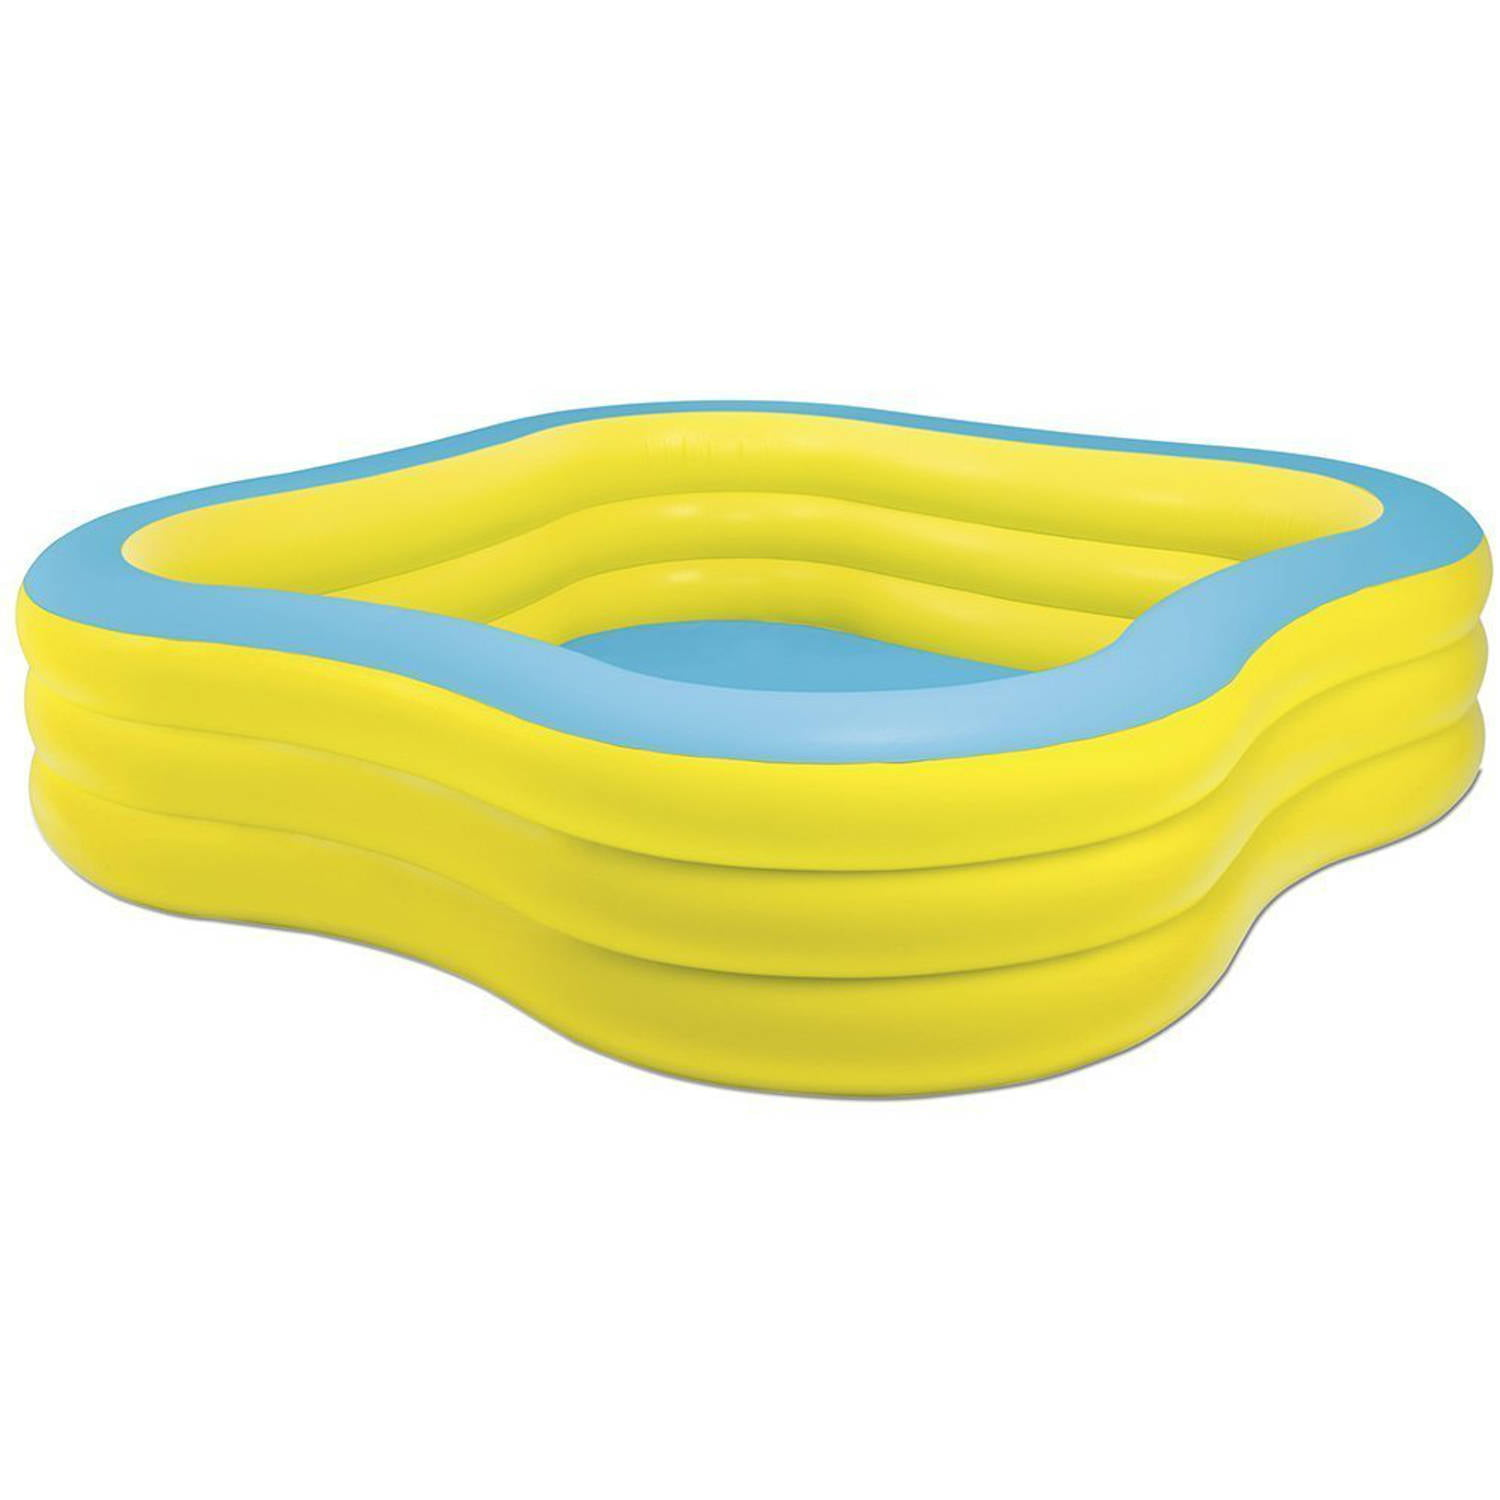 Intex Inflatable Beach Wave Swim Center Family Pool   Walmart.com